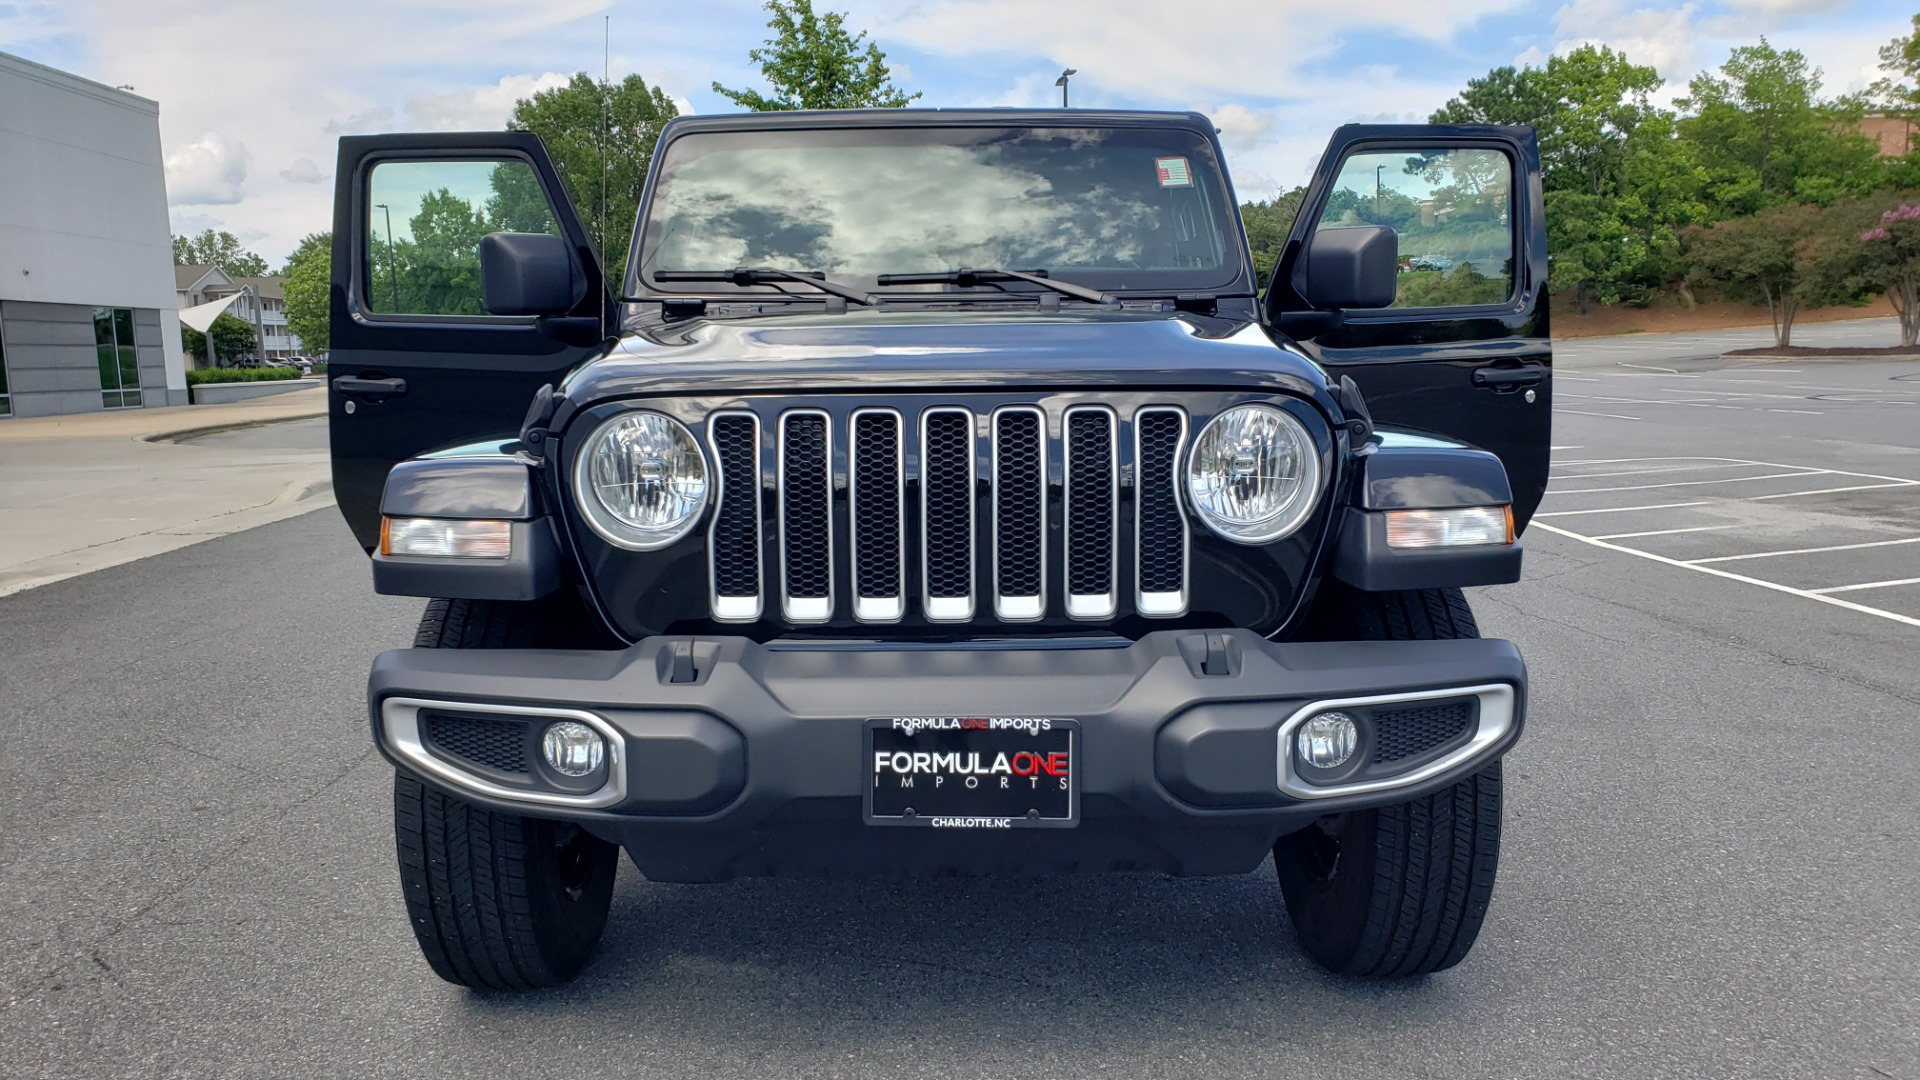 Used 2018 Jeep WRANGLER UNLIMITED SAHARA / 3.6L V6 / 6-SPD MAN / ALPINE / NAV / HTD STS / REARVIEW for sale $43,999 at Formula Imports in Charlotte NC 28227 32